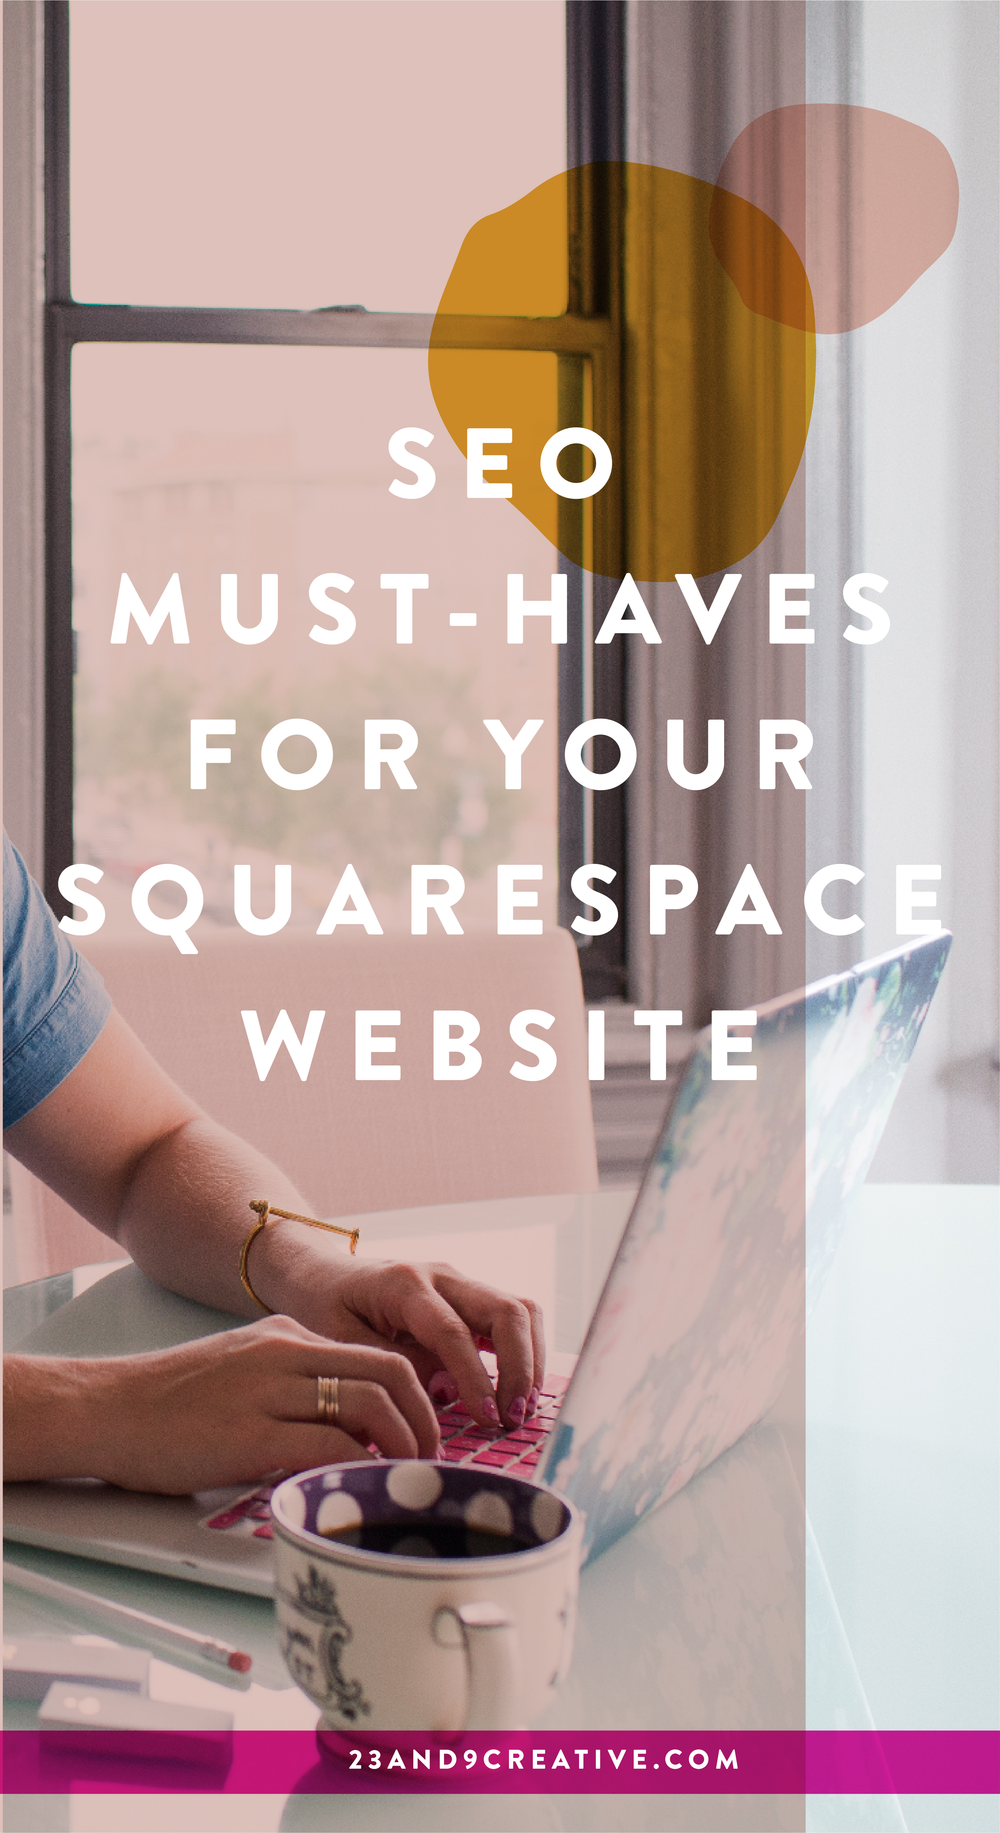 SEO must haves